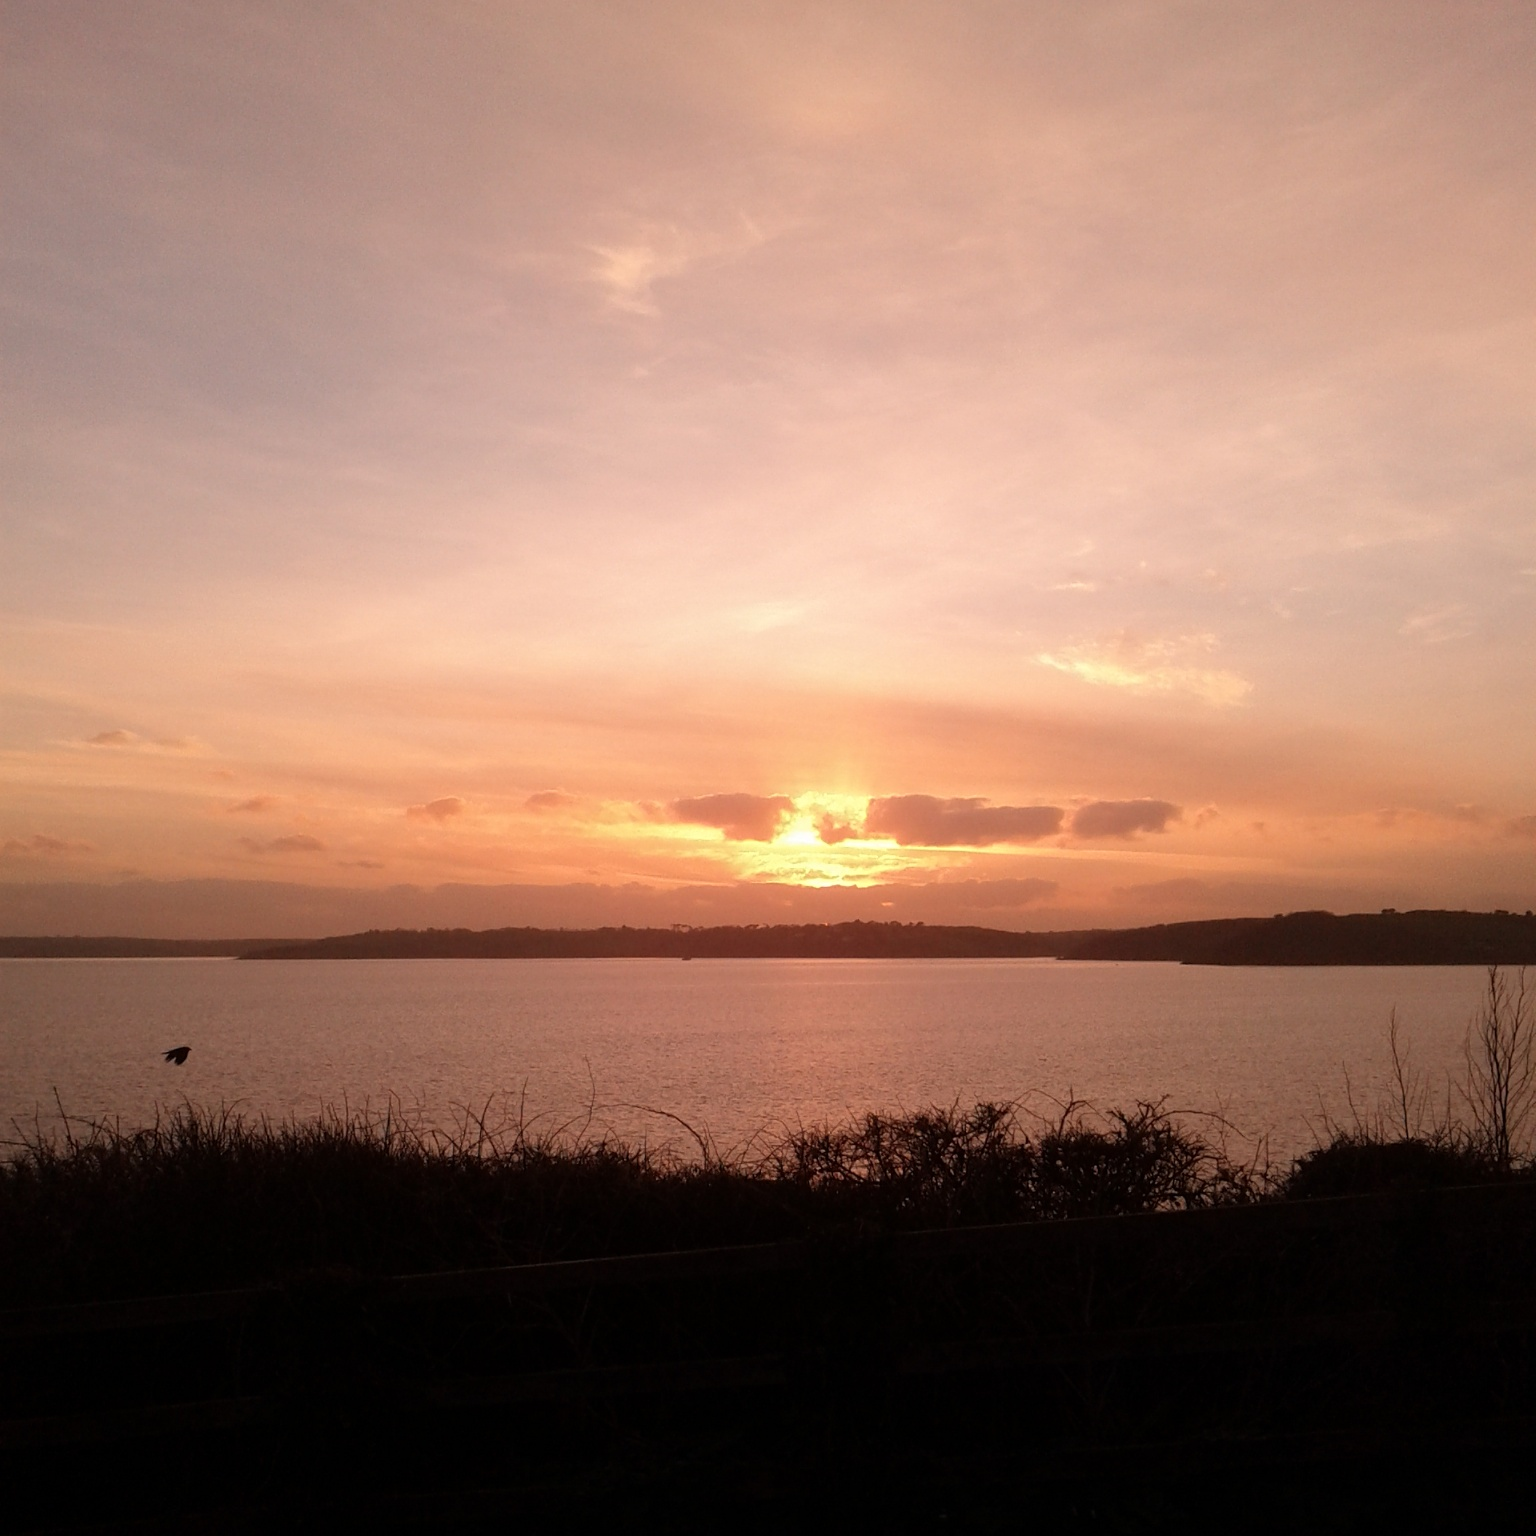 Sunset over Falmouth bay. Falmouth is home to one of the best art and design schools in the UK and many small galleries.